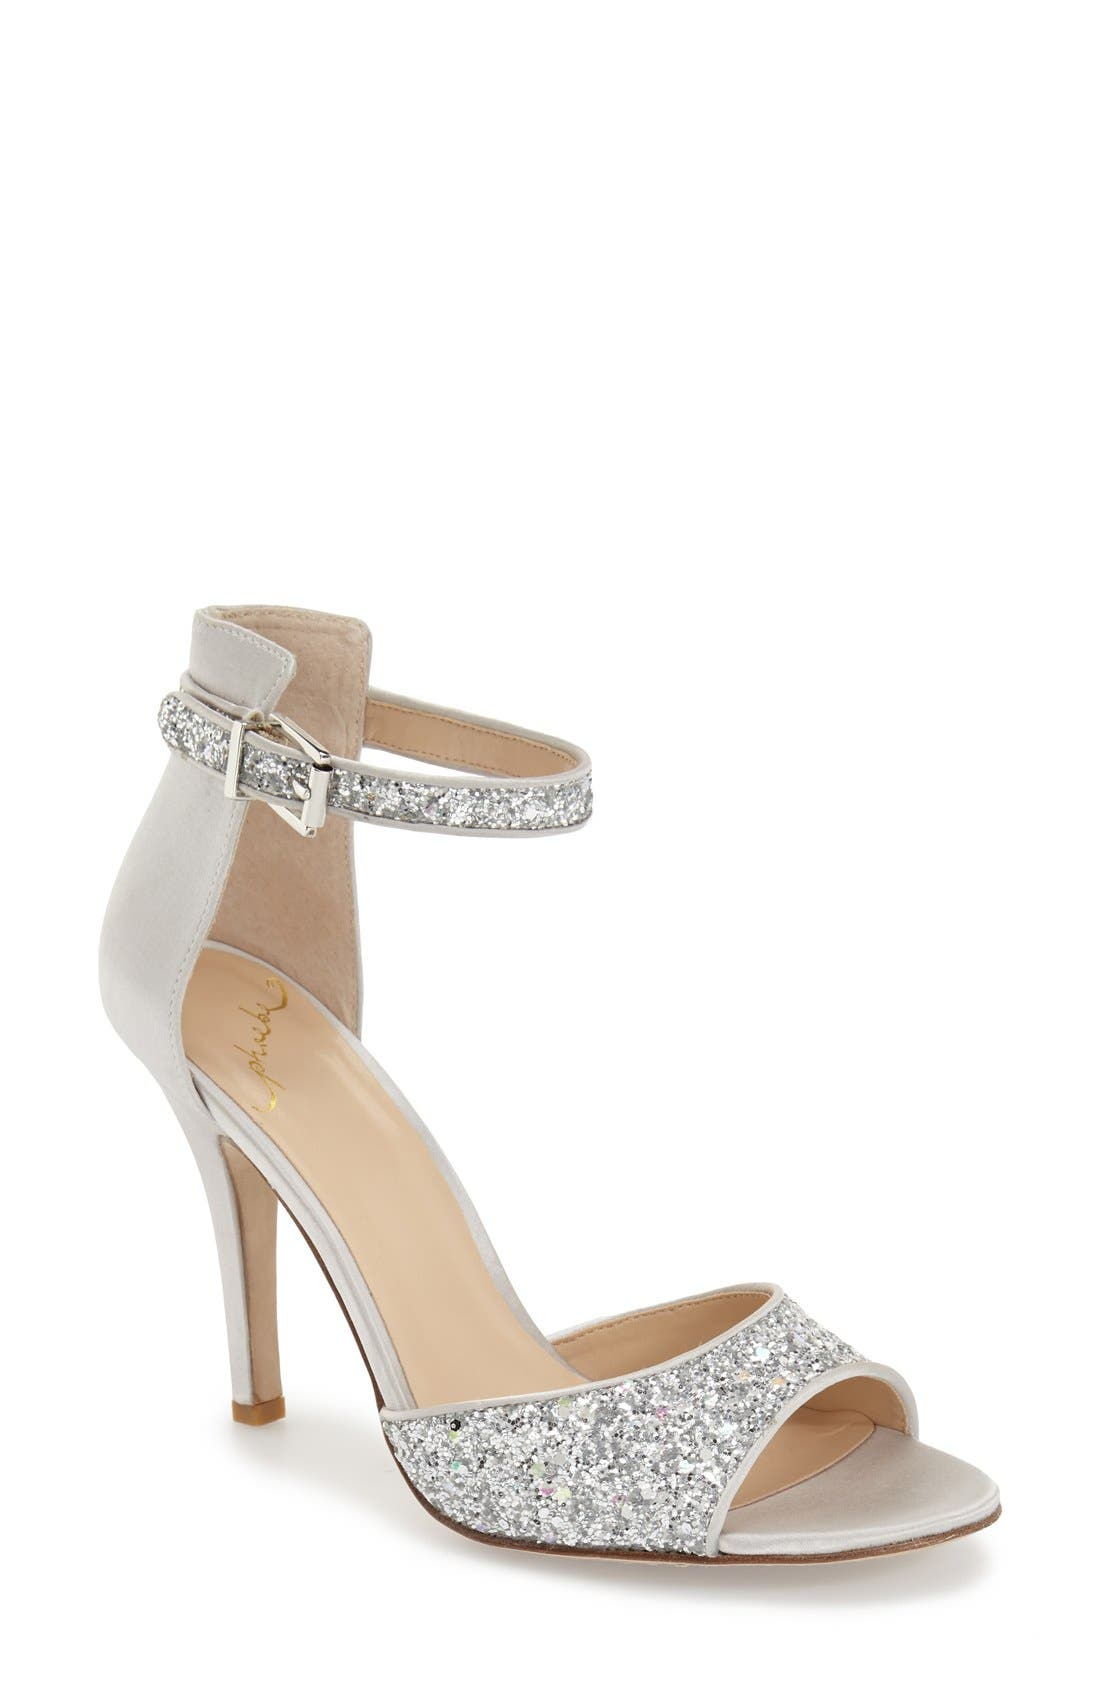 Alternate Image 1 Selected - Kay Unger 'Phoebe Collection - Helena Glitter' Sandal (Women)